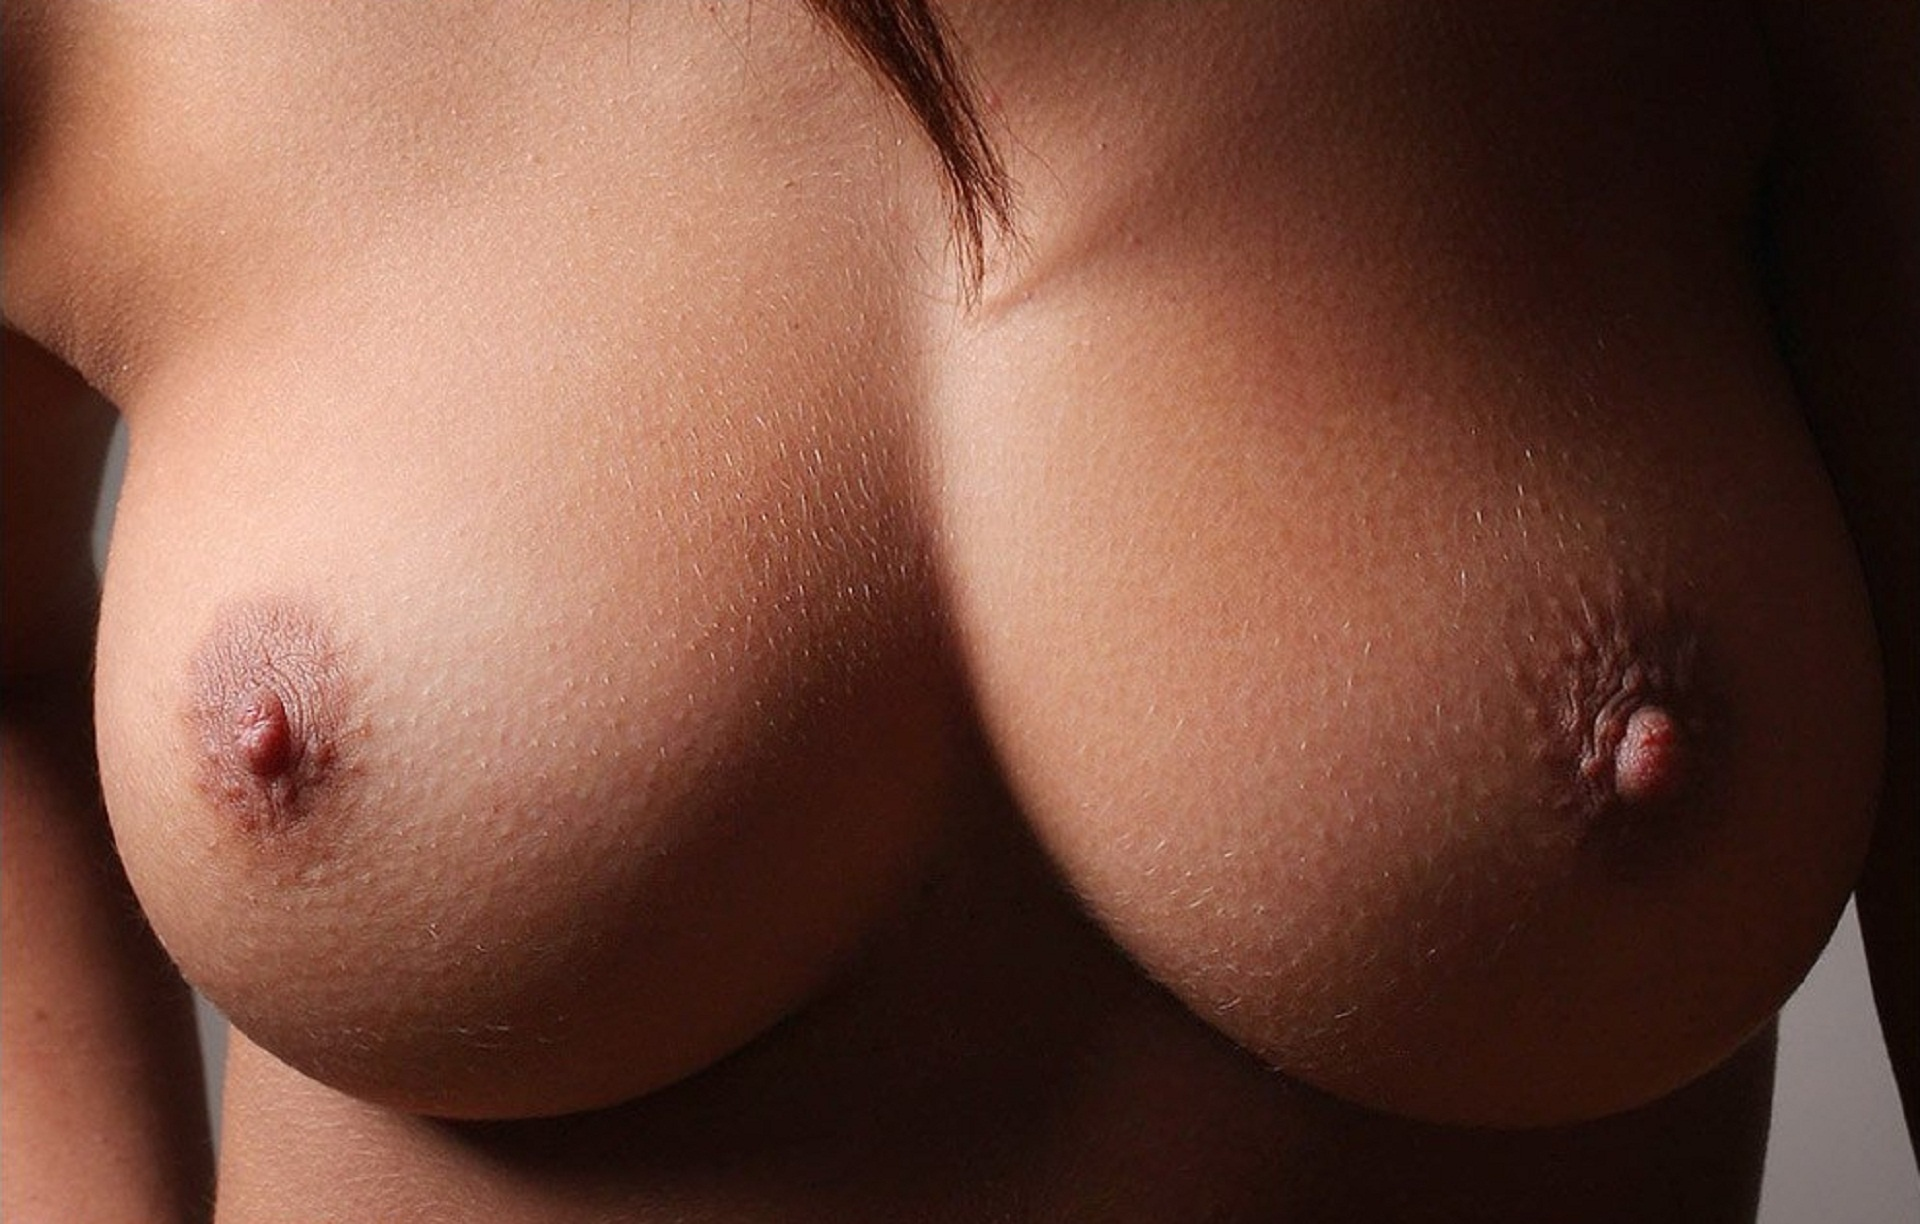 Boobs with nipple pasties